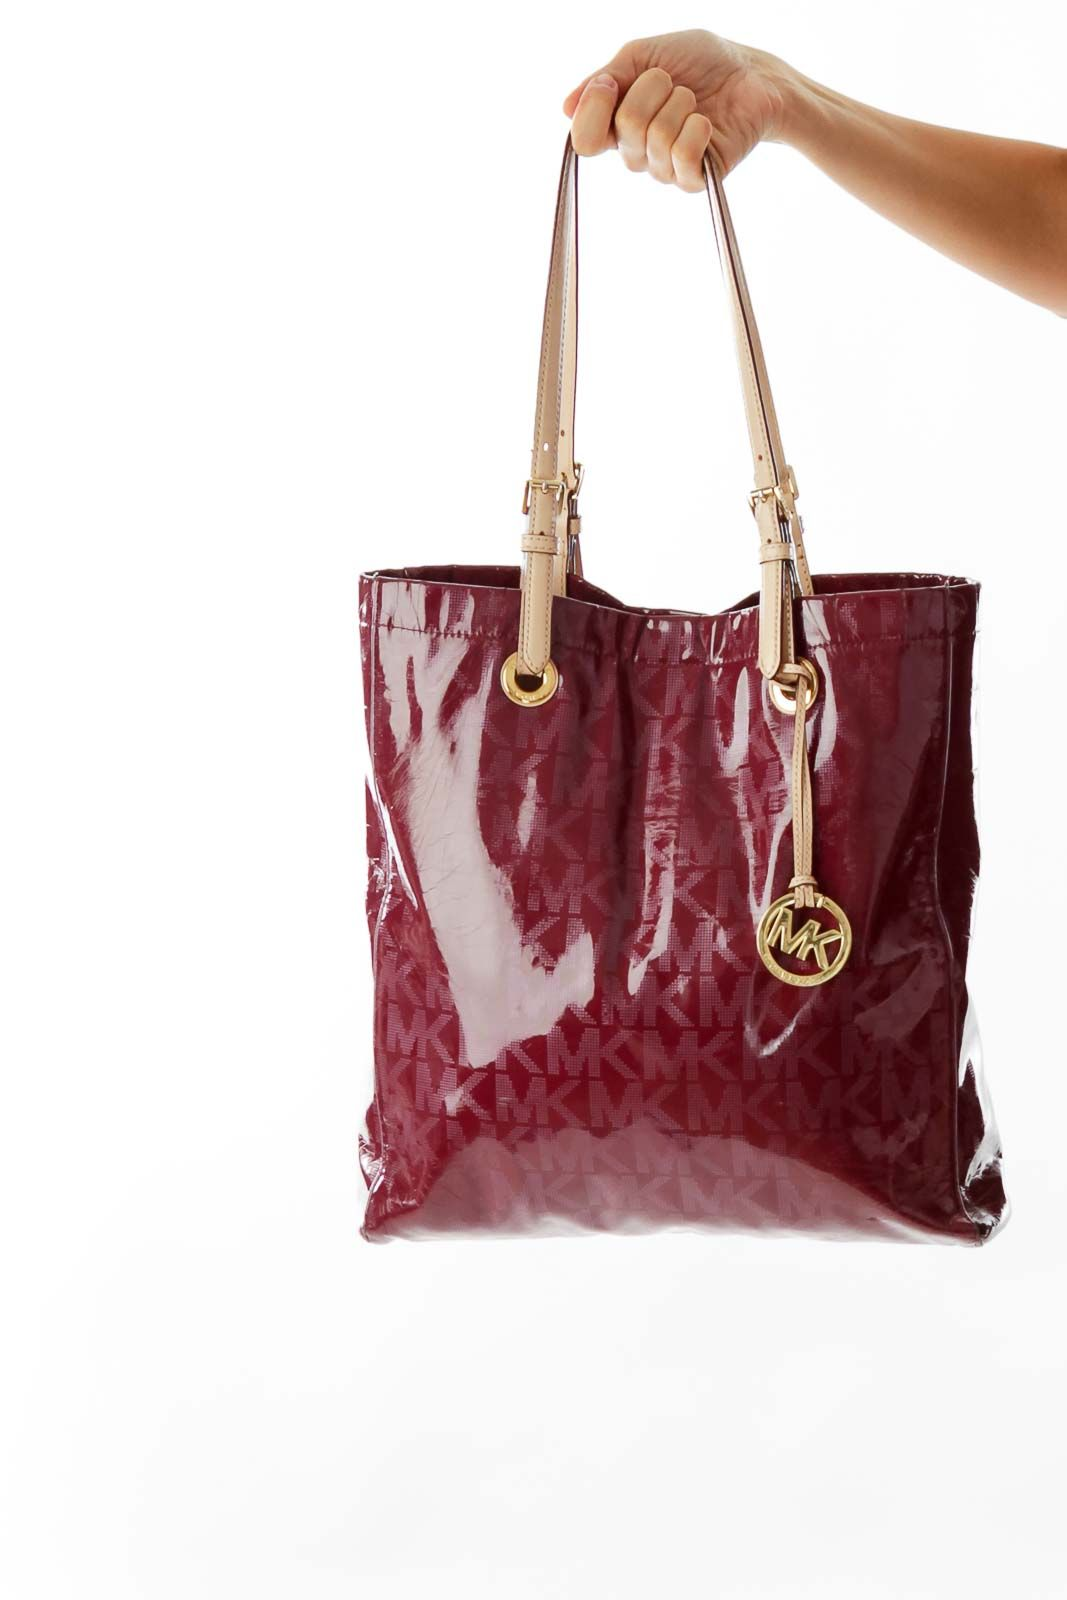 c9f2388aaa2c Elegant handbags for work burgundy patent leather monogram bag by Michael  Kors #silkroll